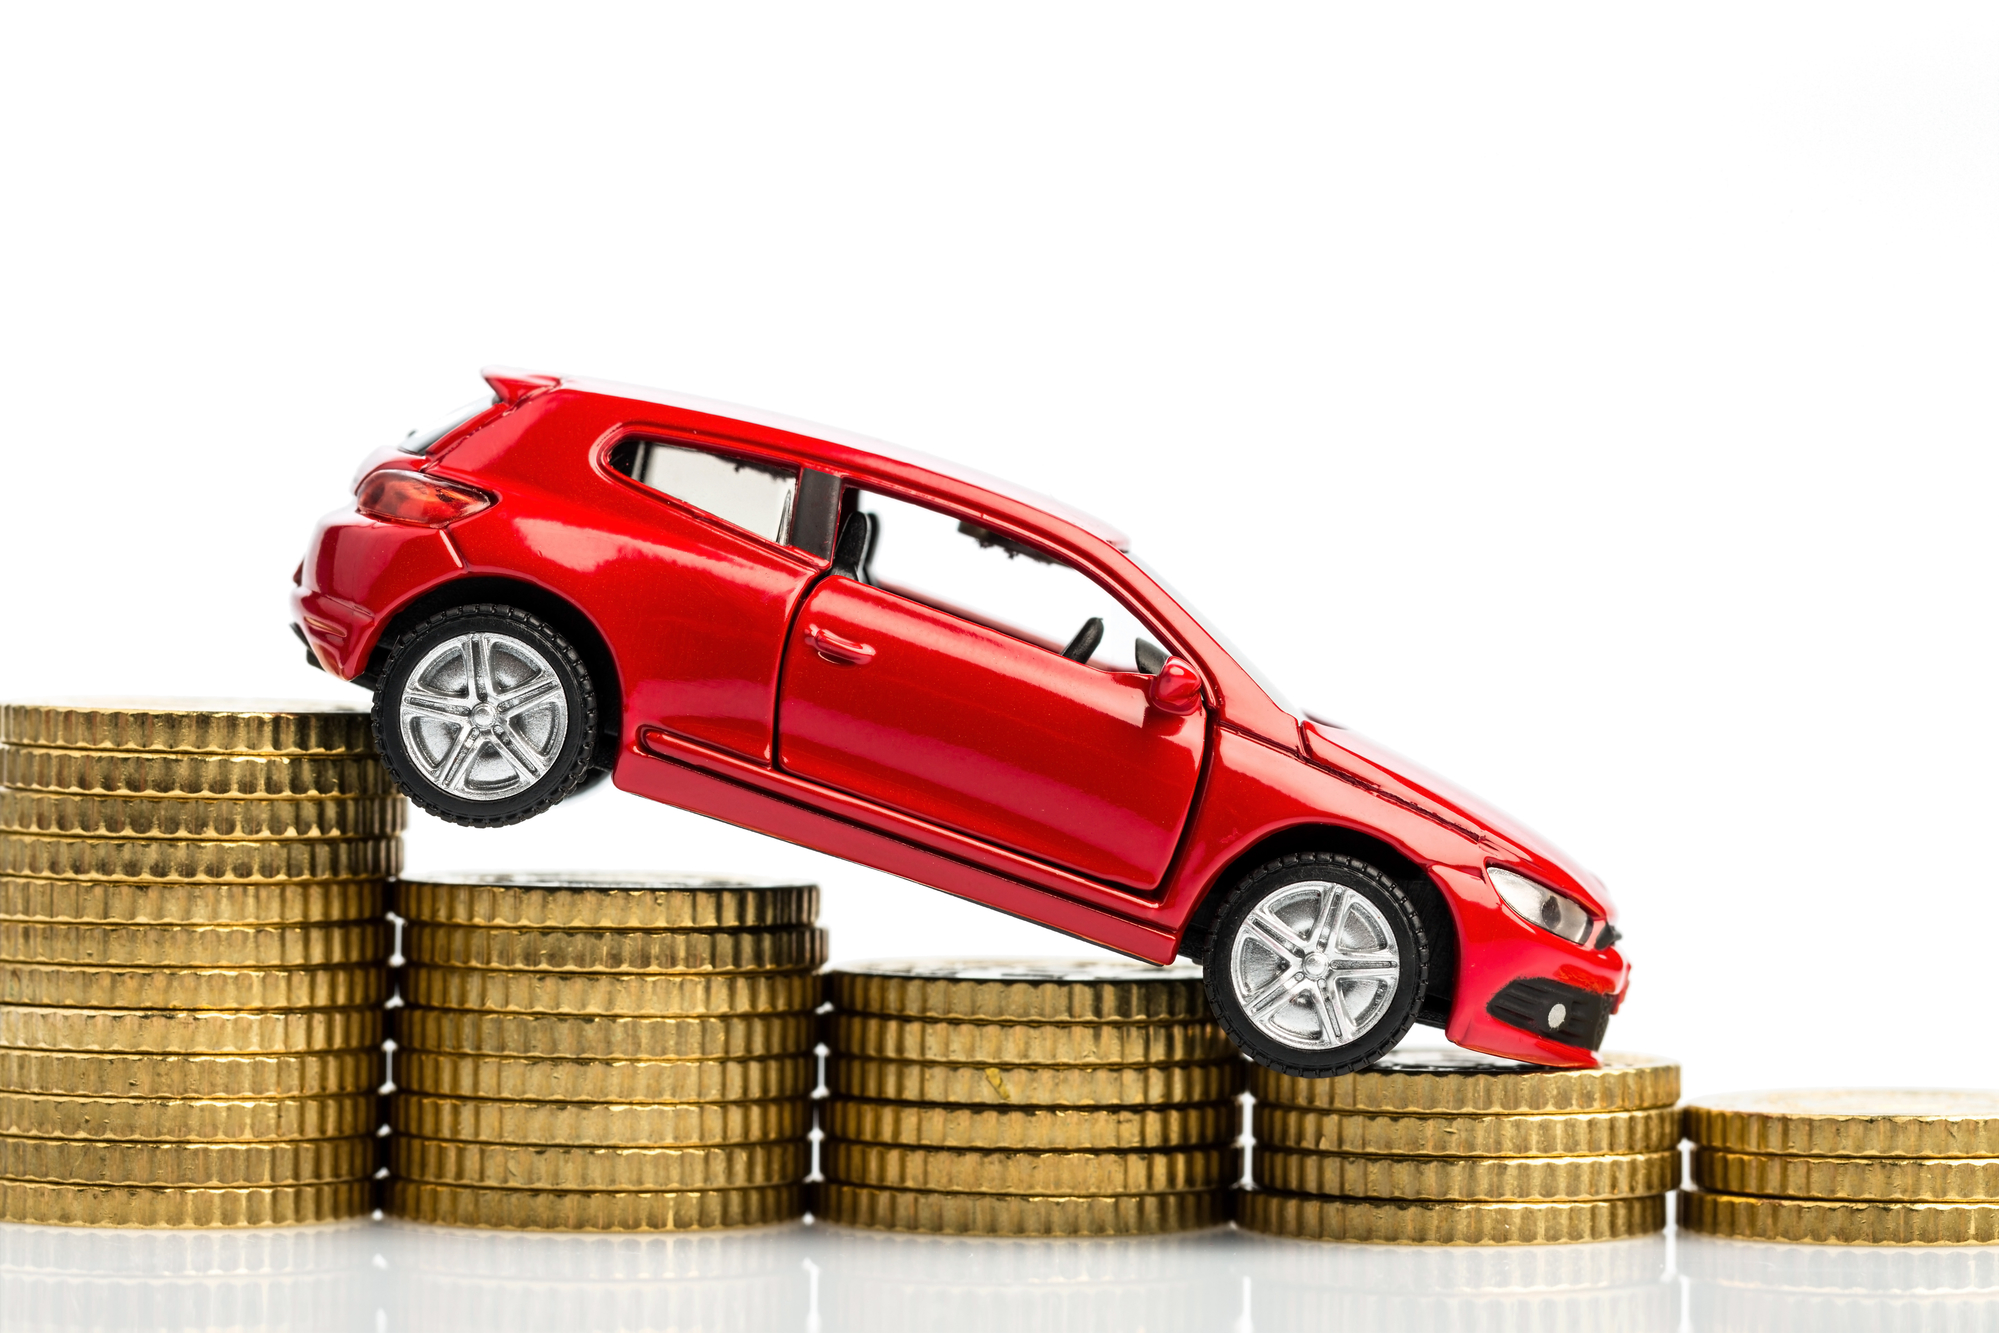 Wrecked Cars: Get the Best Resale Value - Sell junk car - Sell car for cash | Sellthecars